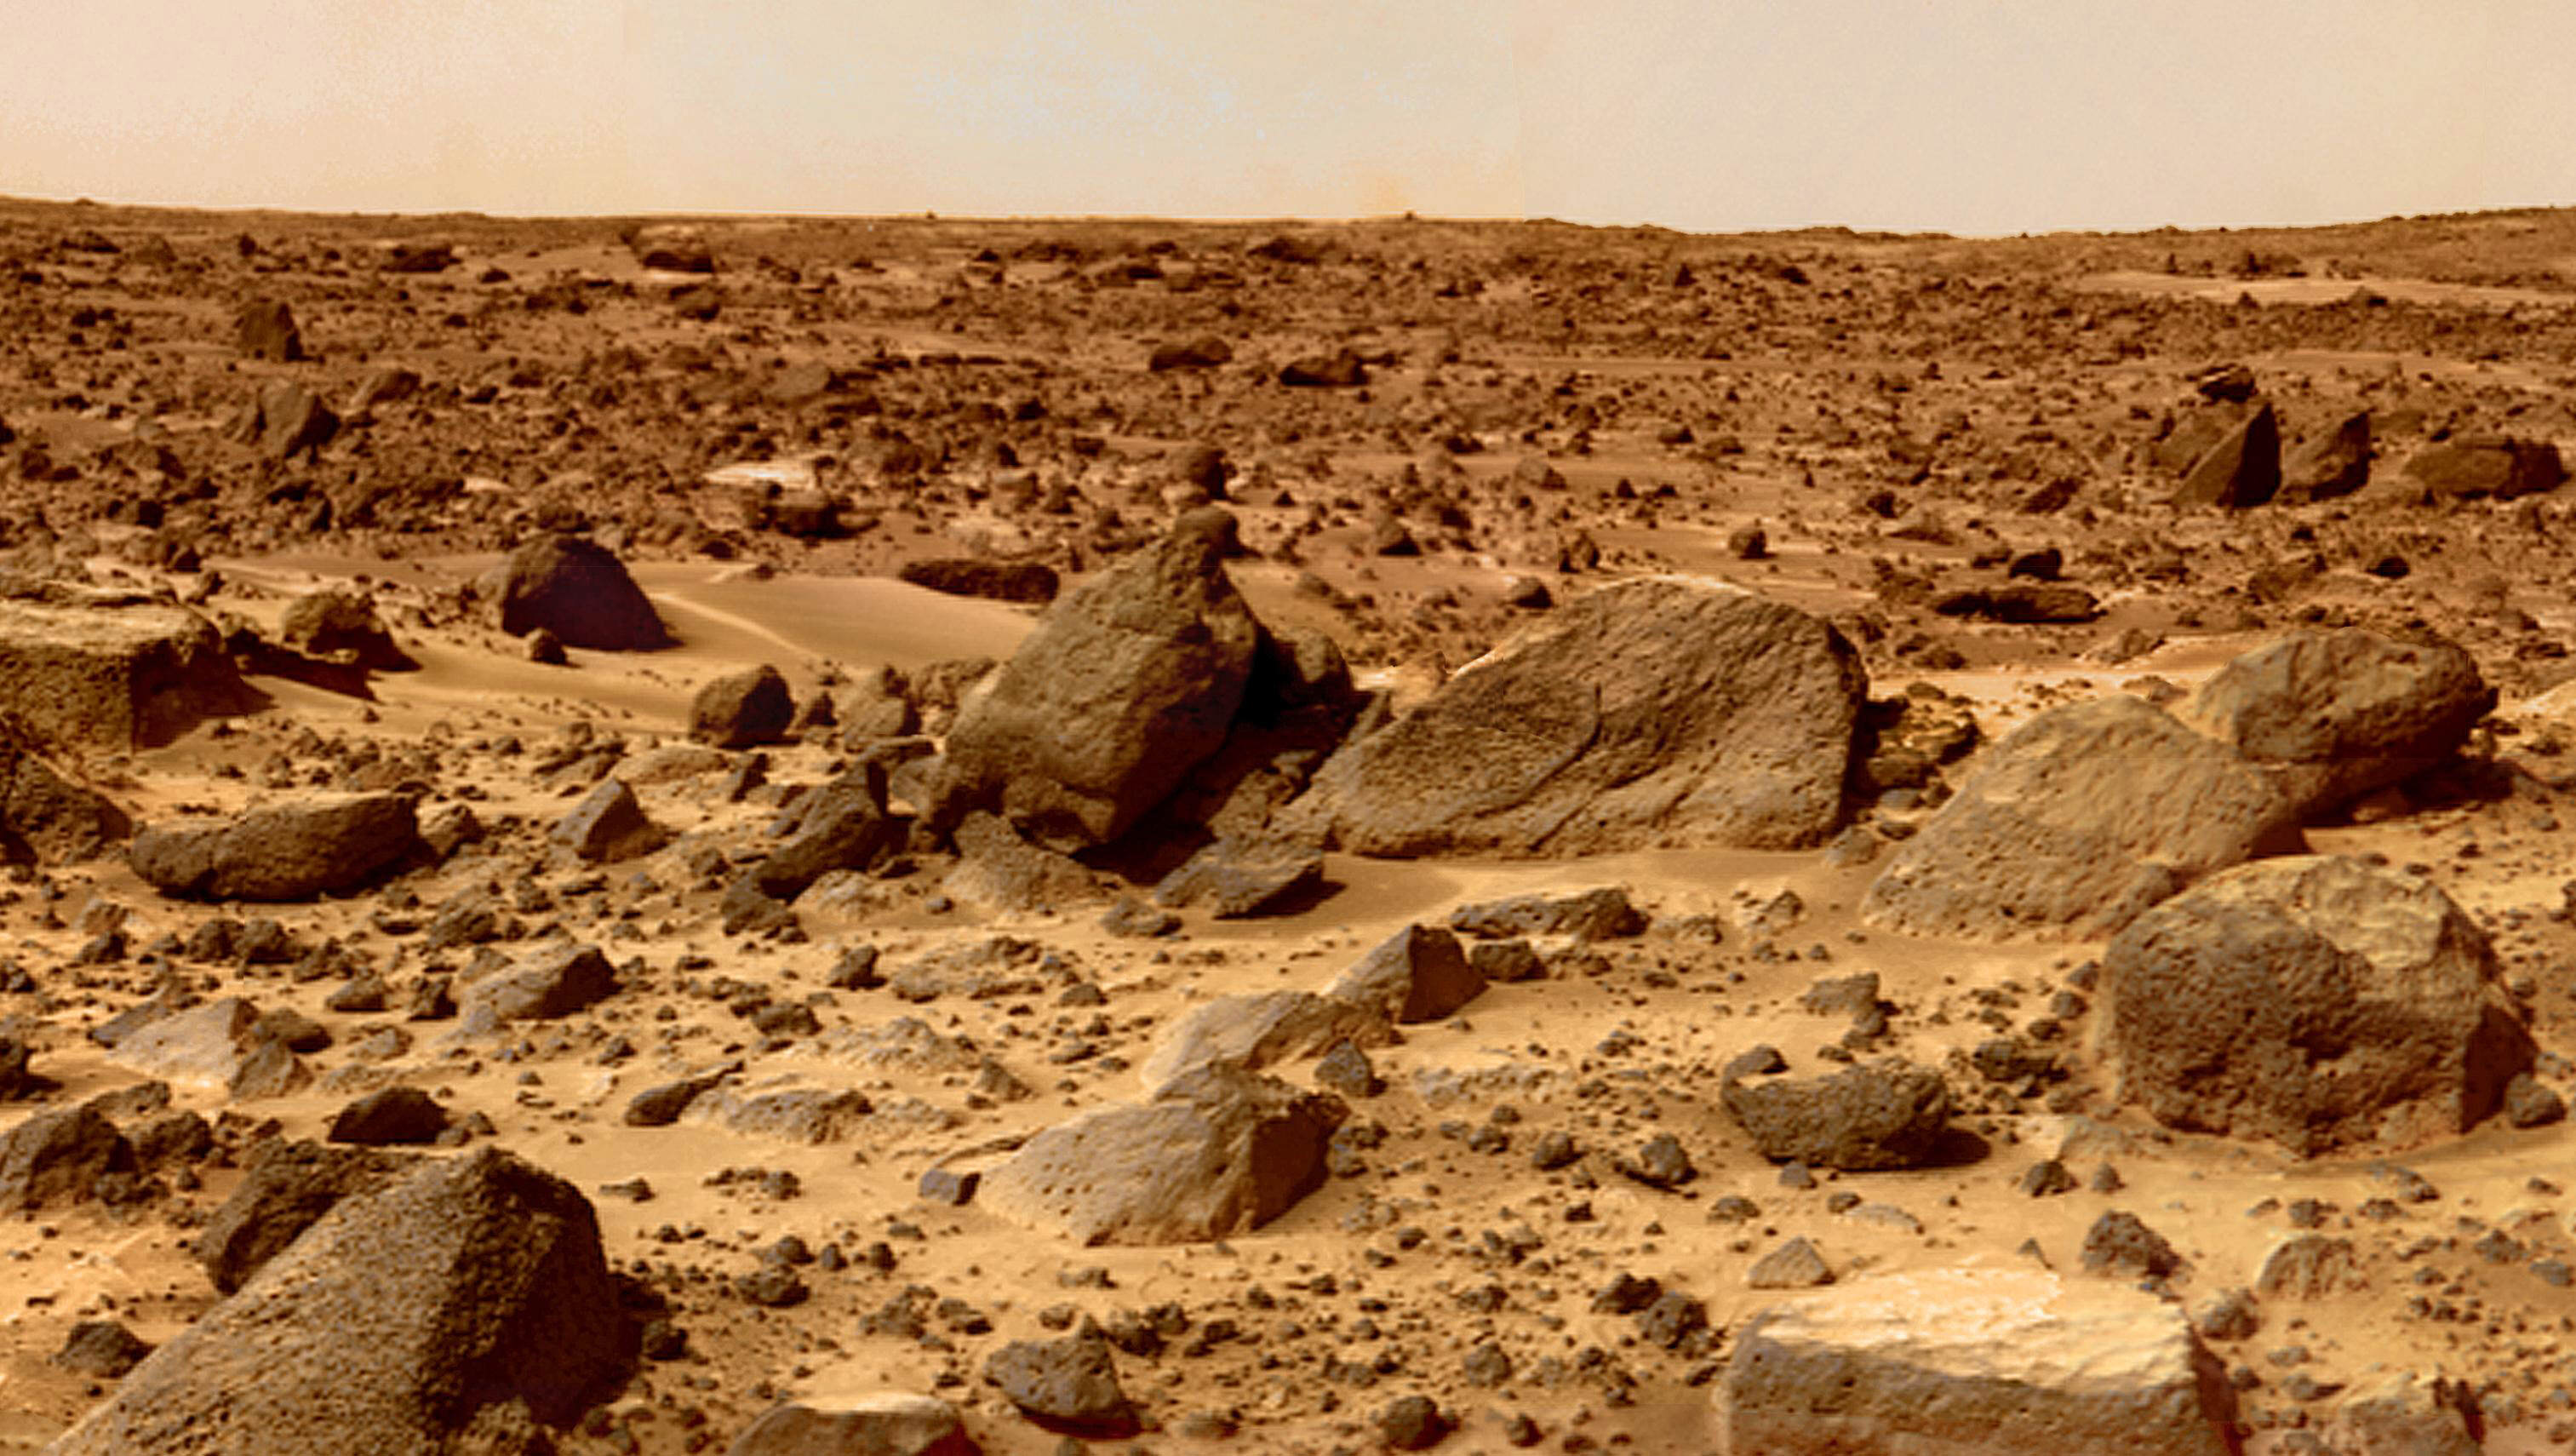 Mars surface twin peaks Europe And Russia To Go On Alien Hunting Mission To Find Life On Mars